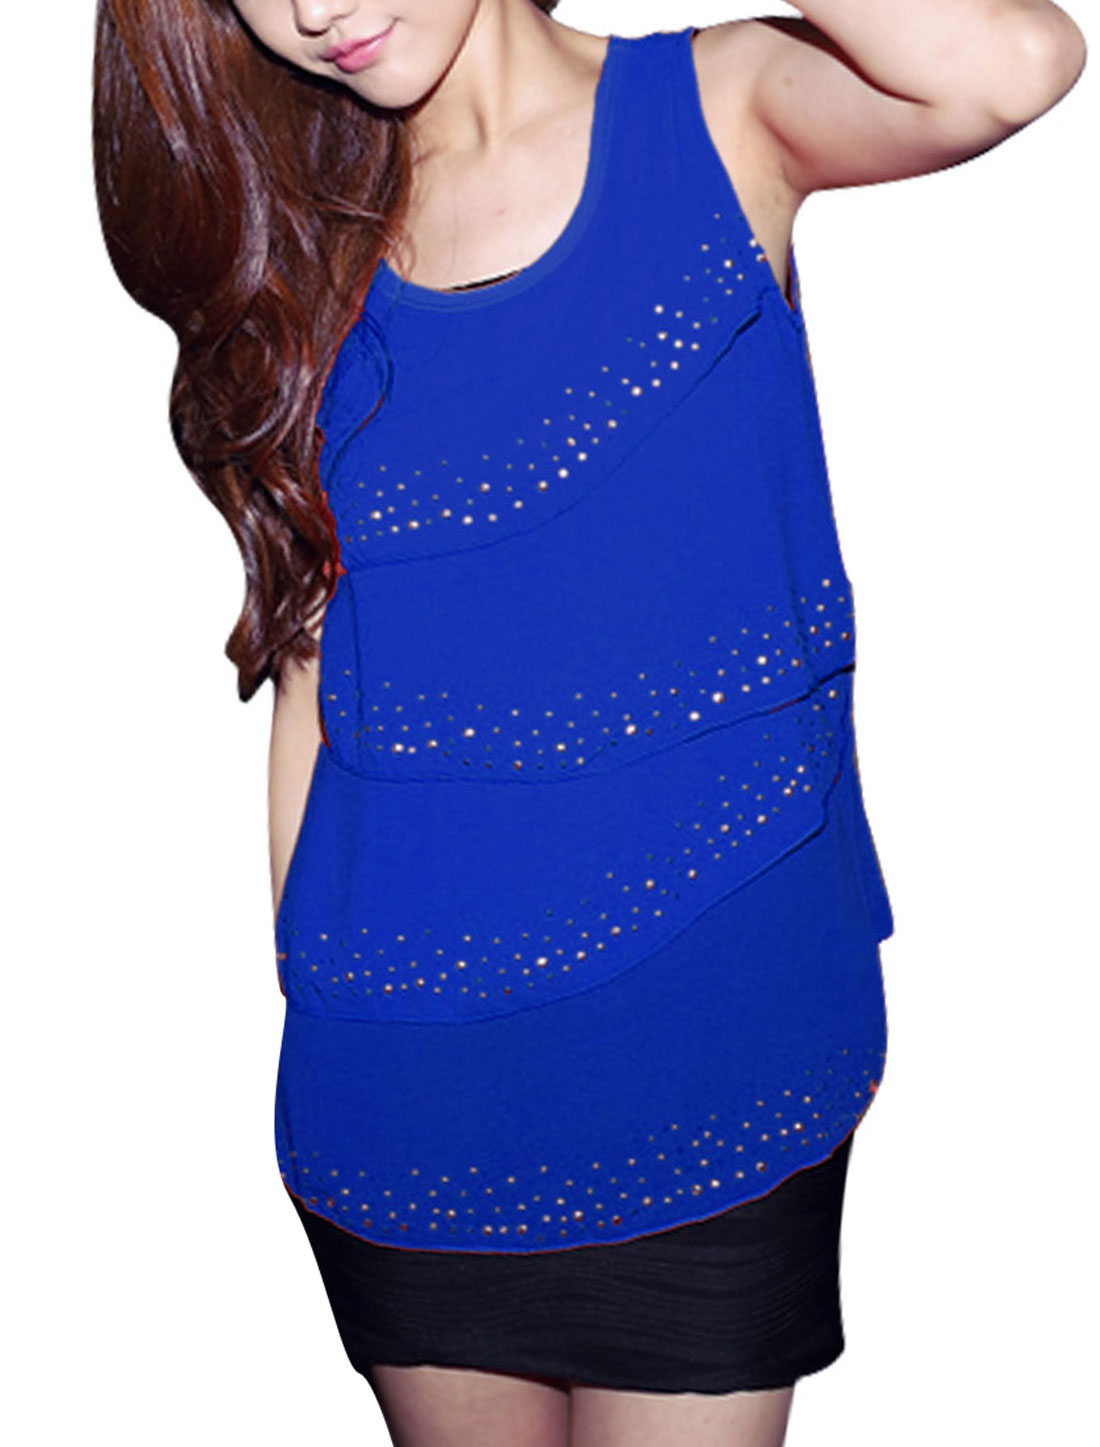 Woman Chic Royalblue Tiered Front Design Semi-Sheer Chiffon Blouse XS